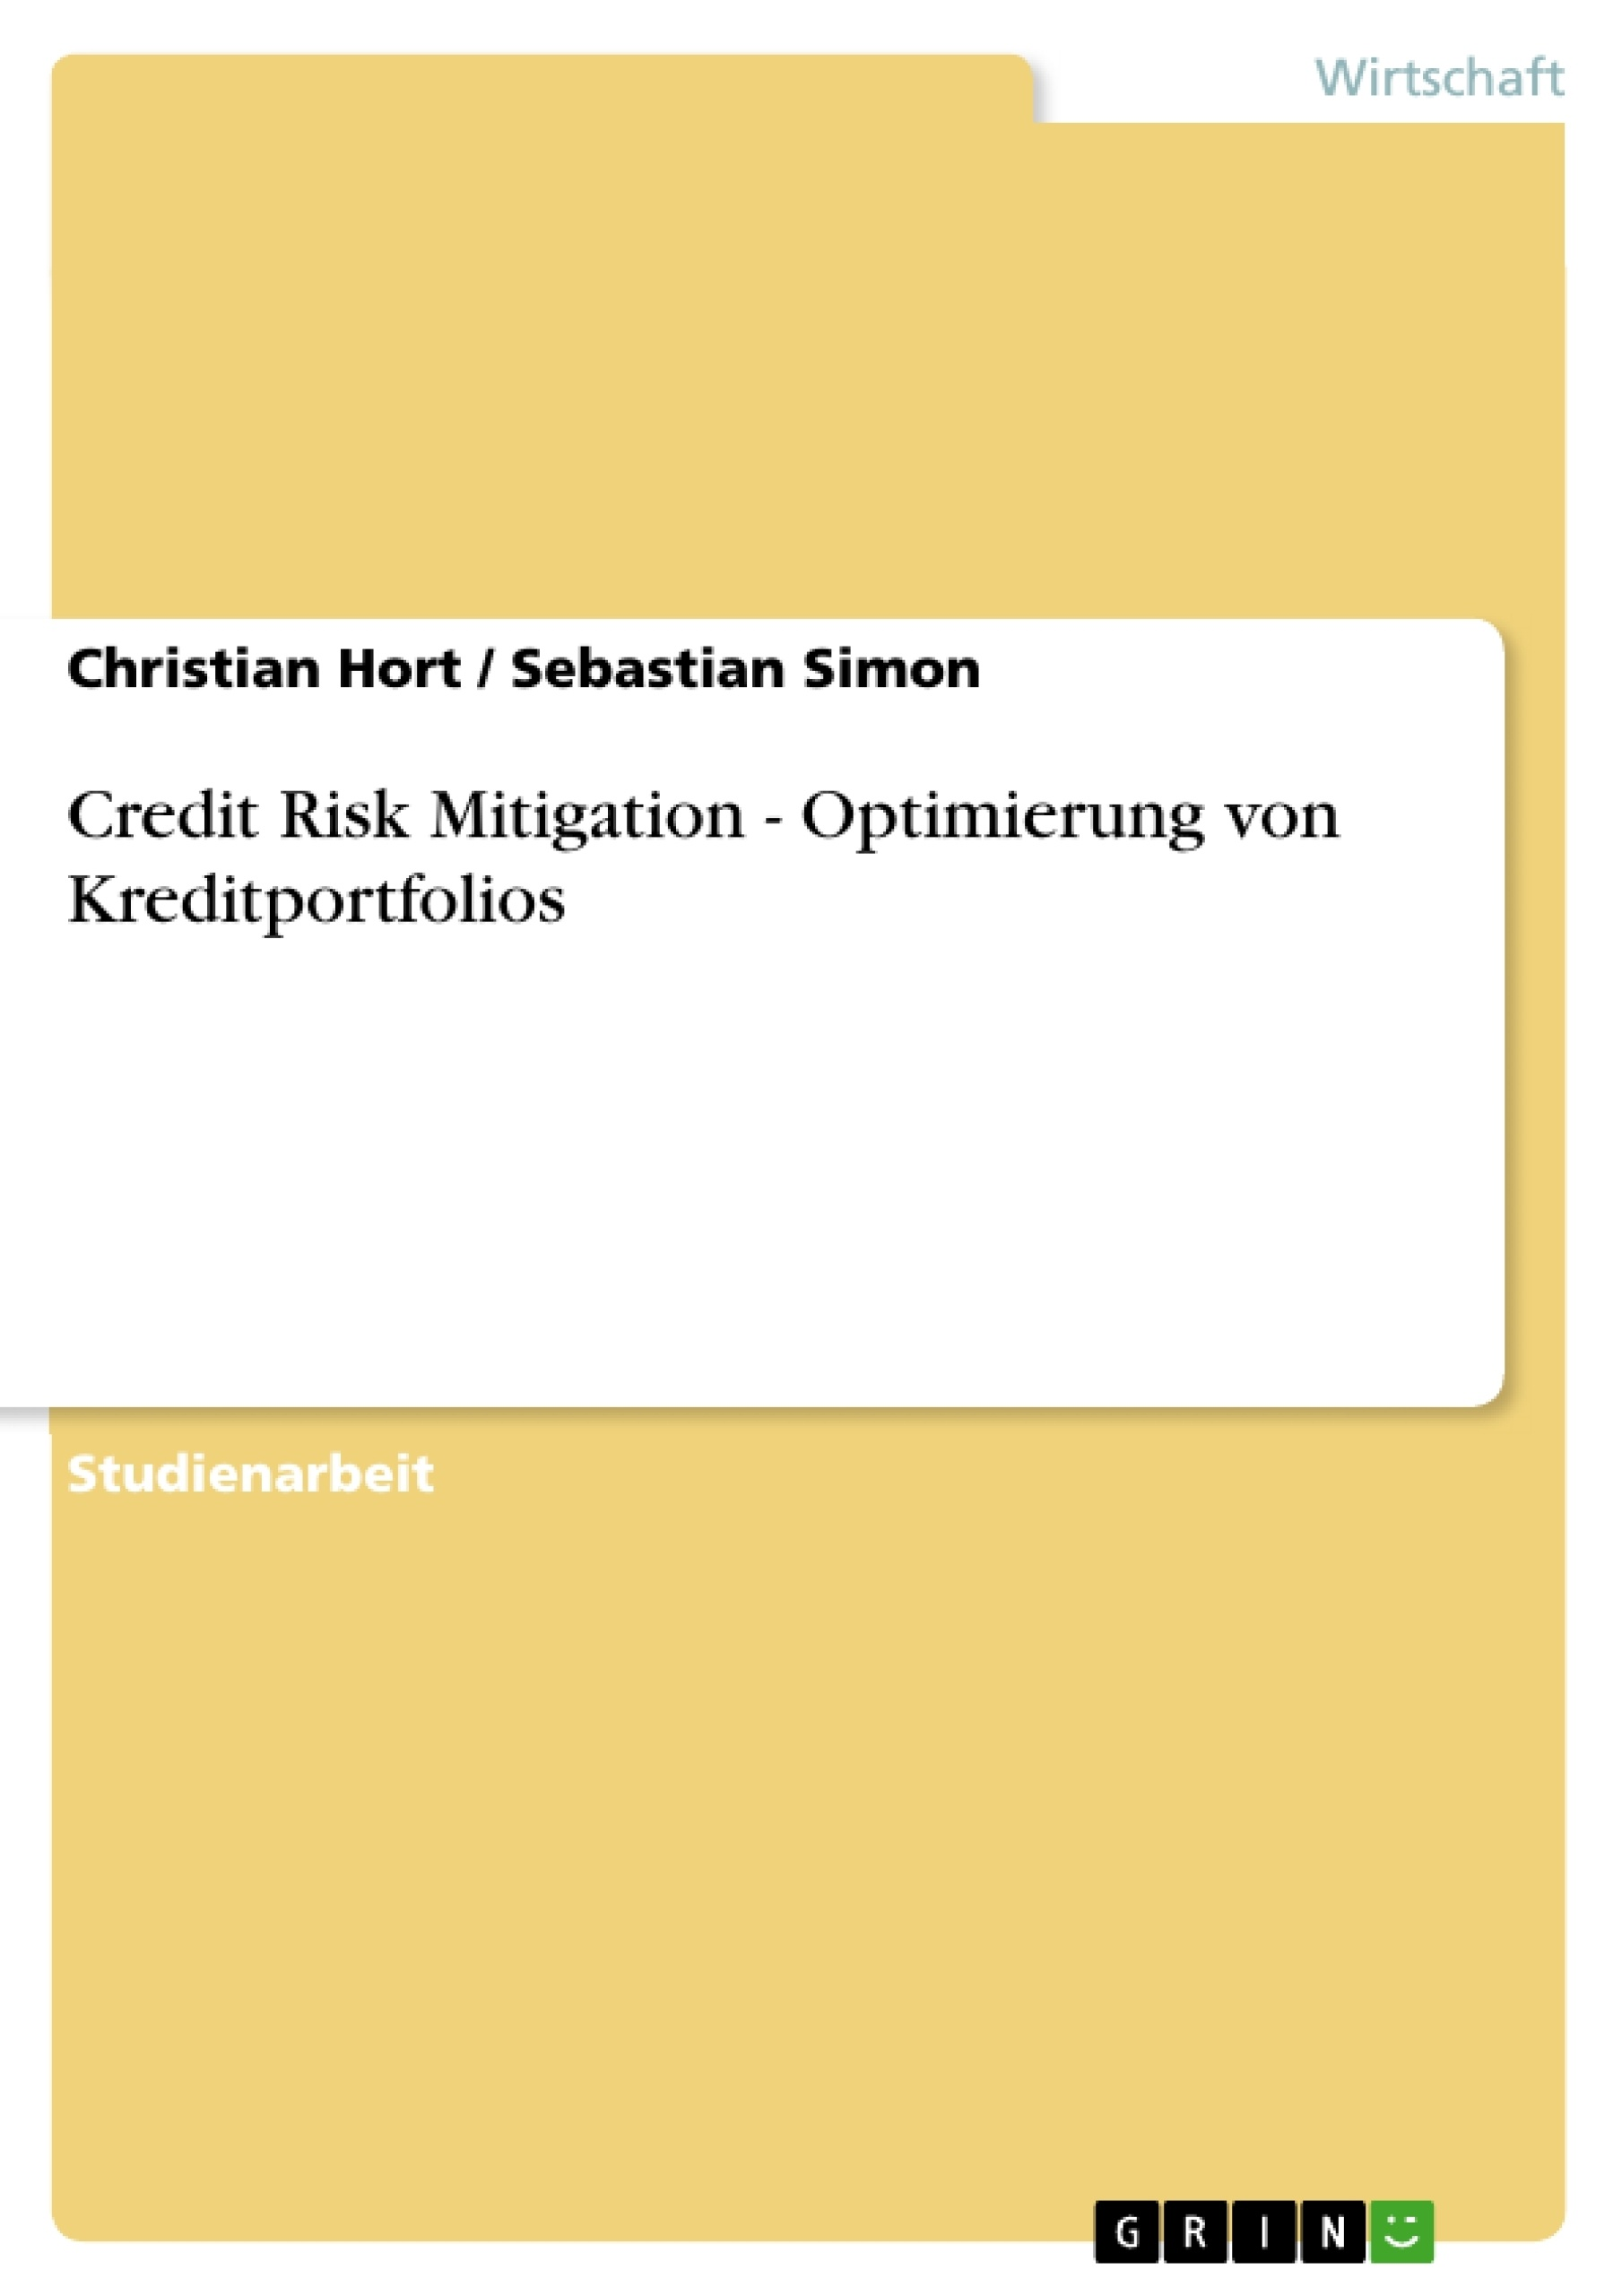 Titel: Credit Risk Mitigation - Optimierung von Kreditportfolios